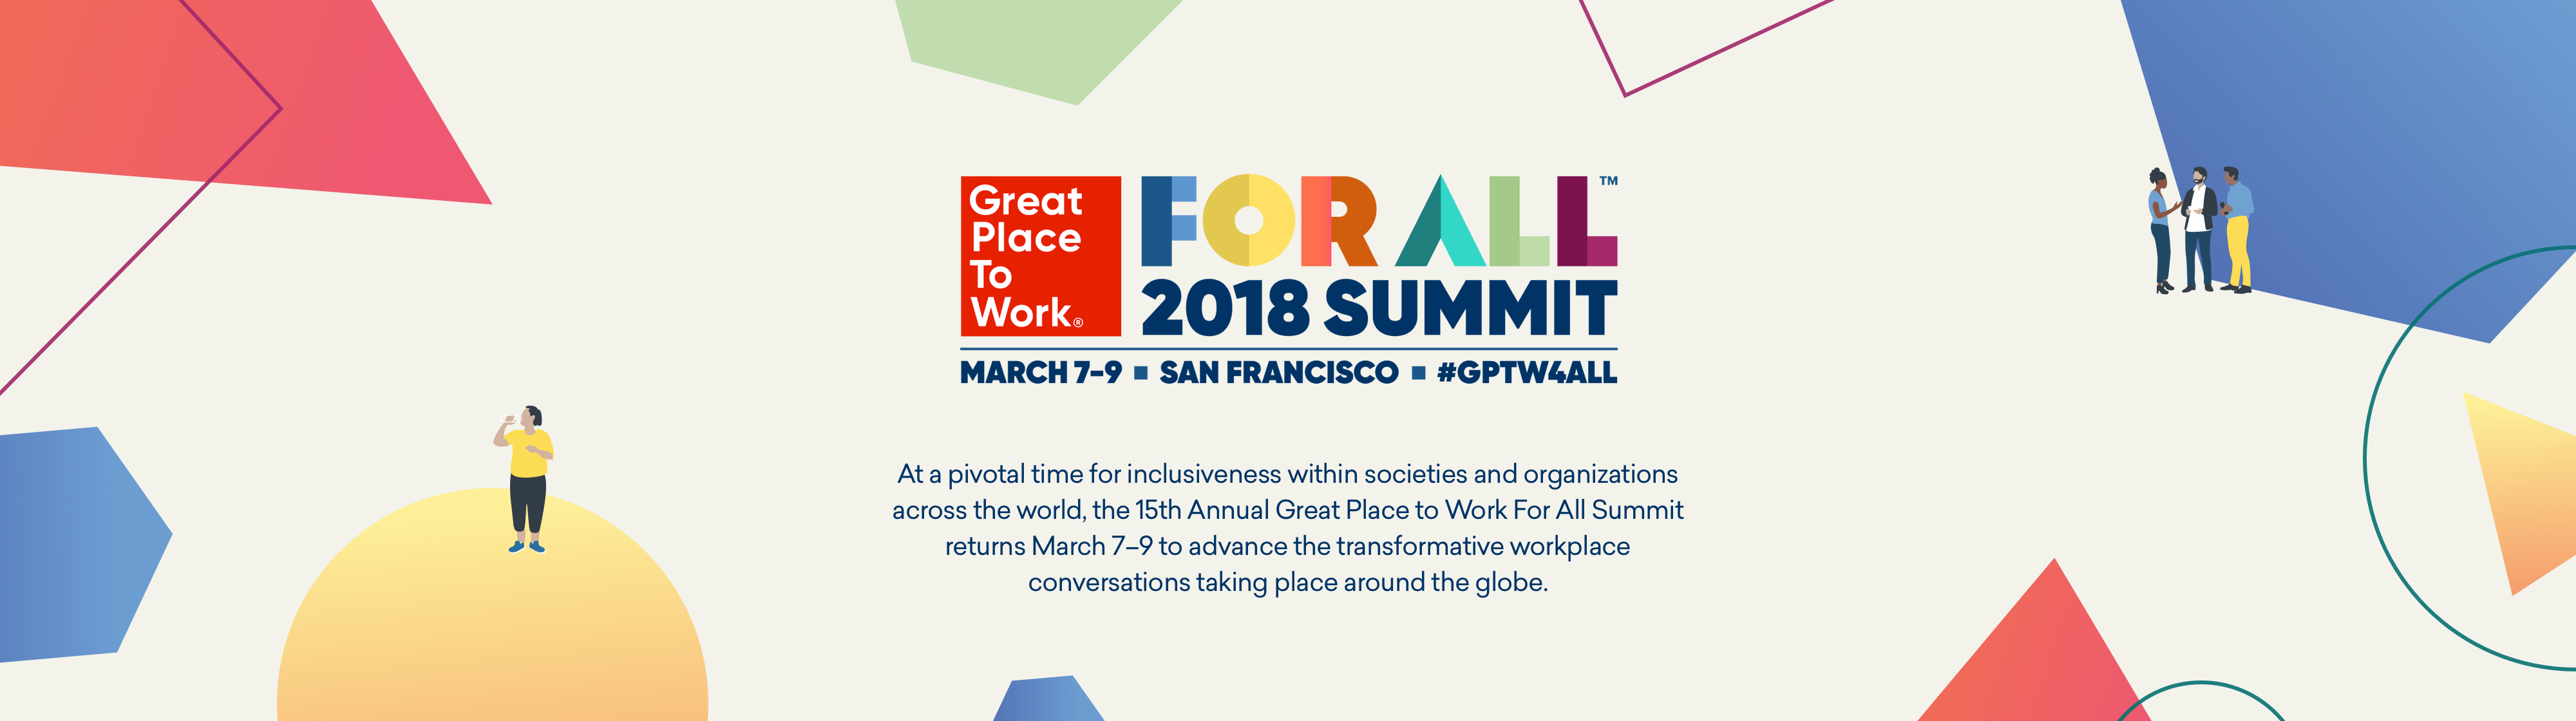 For All Summit. March 7-9, 2018 in San Francisco